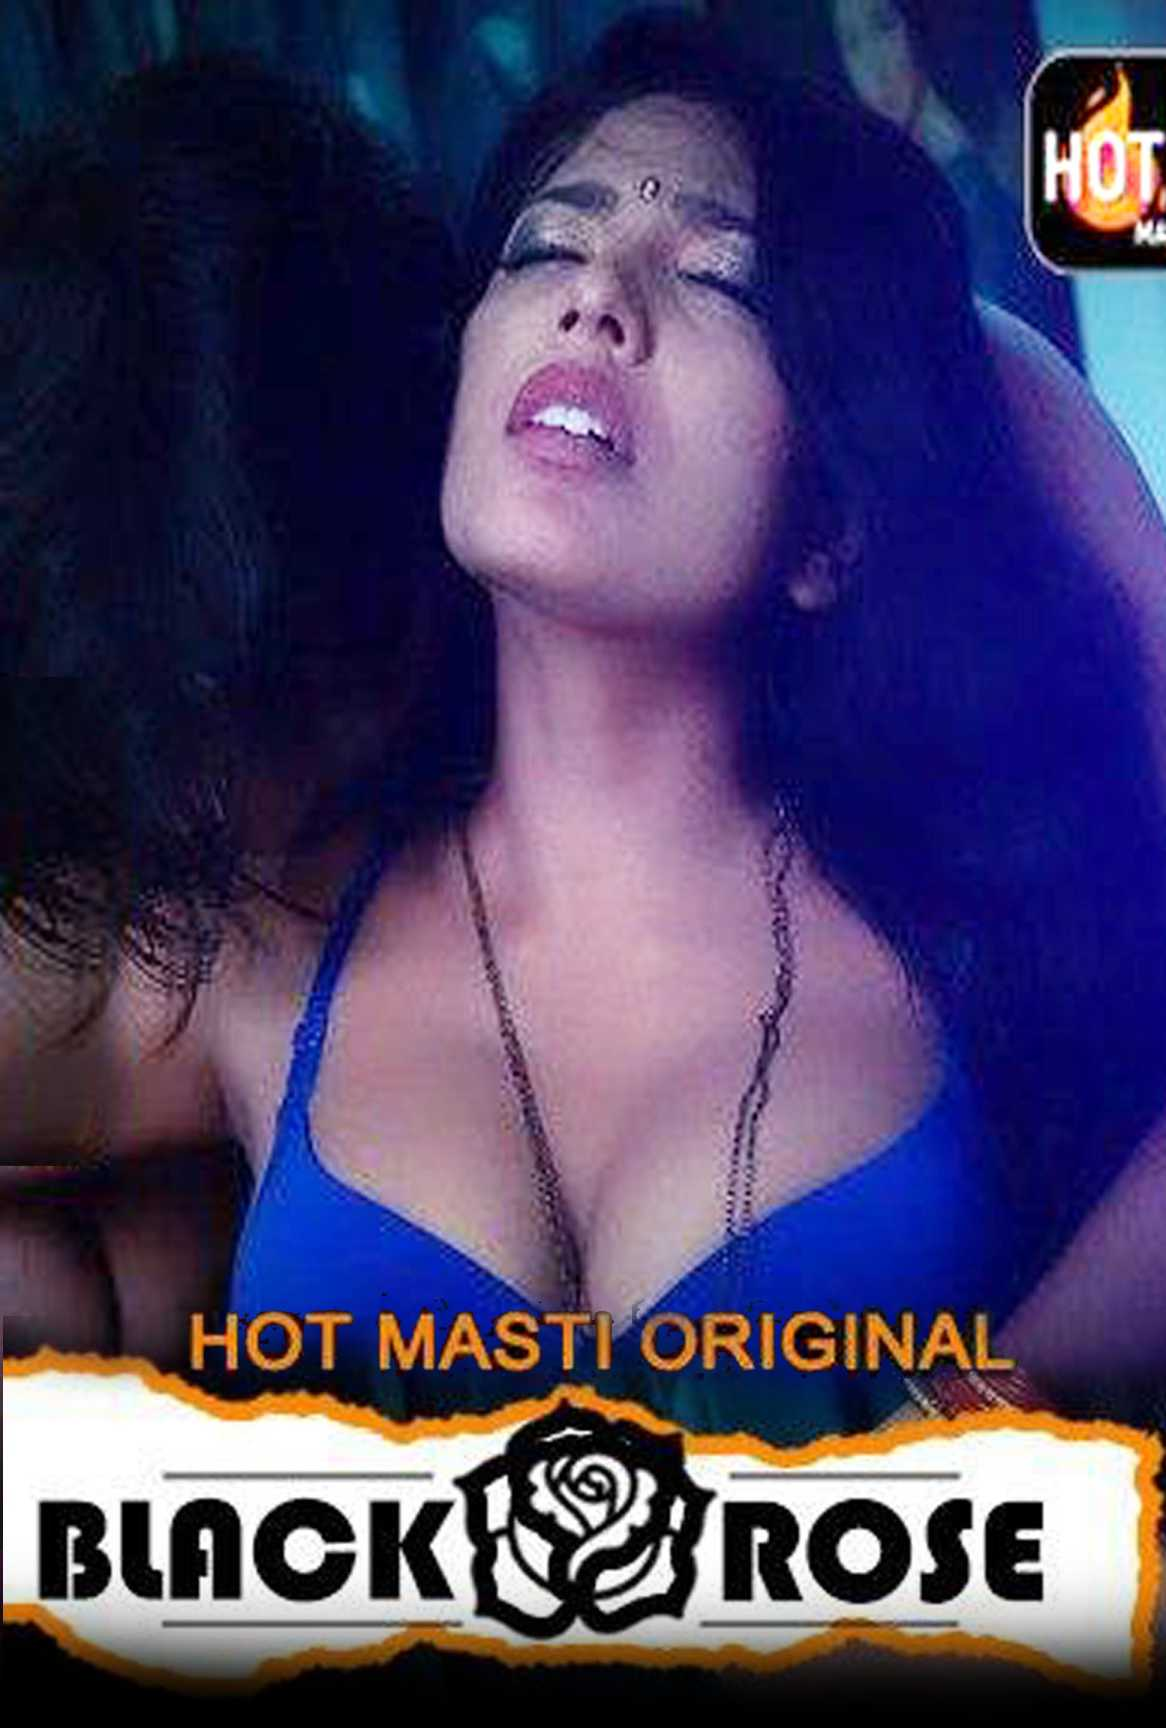 Black Rose 2020 S01E01 Hindi HotMasti Original Web Series 720p HDRip 170MB x264 AAC